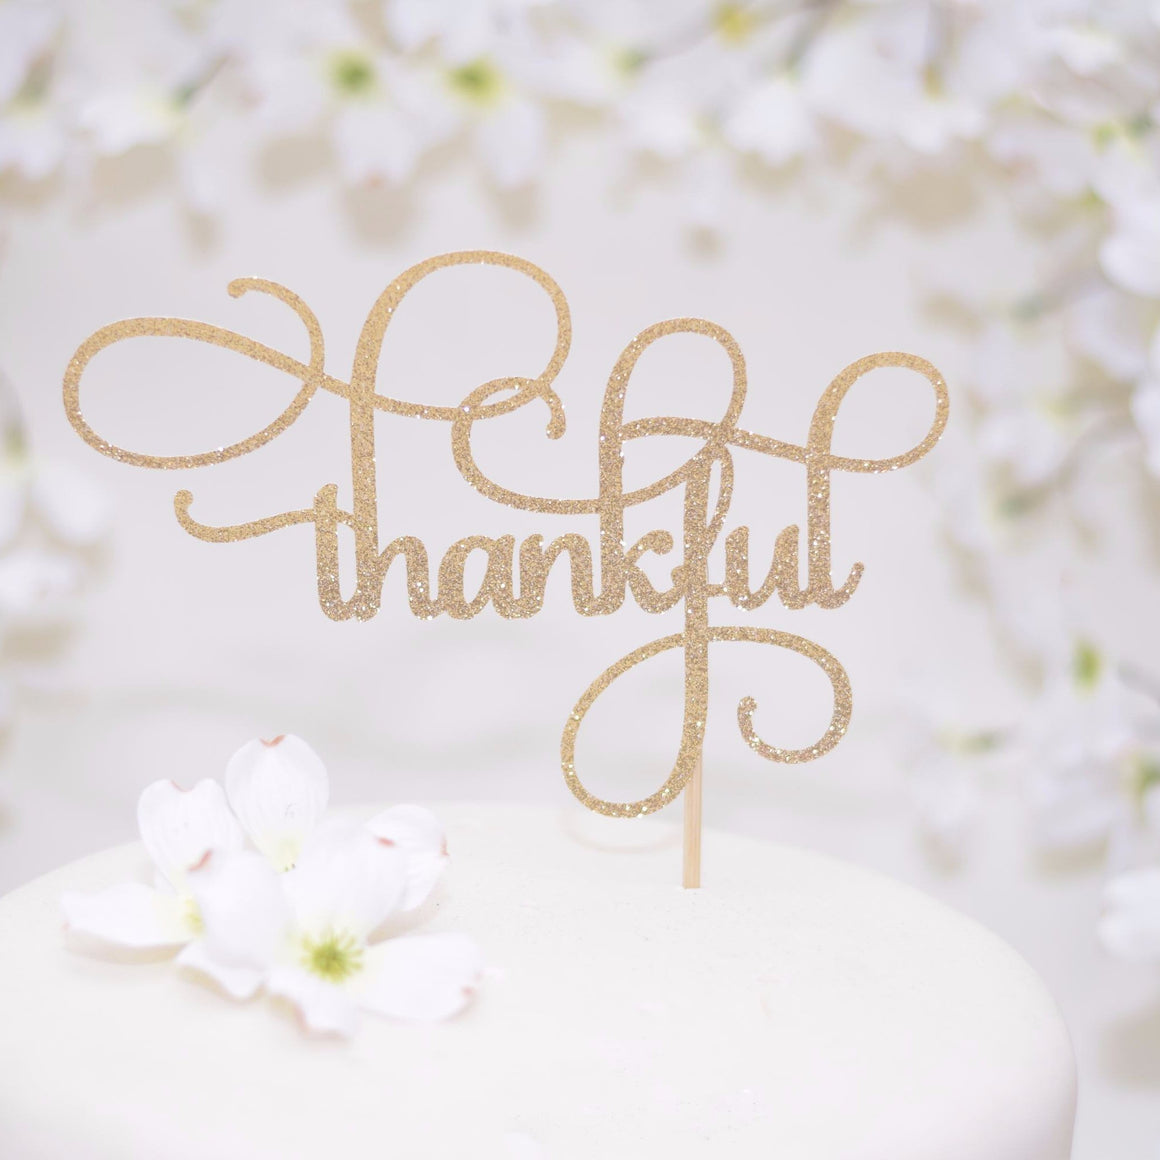 Thankful gold glitter cake topper on white cake